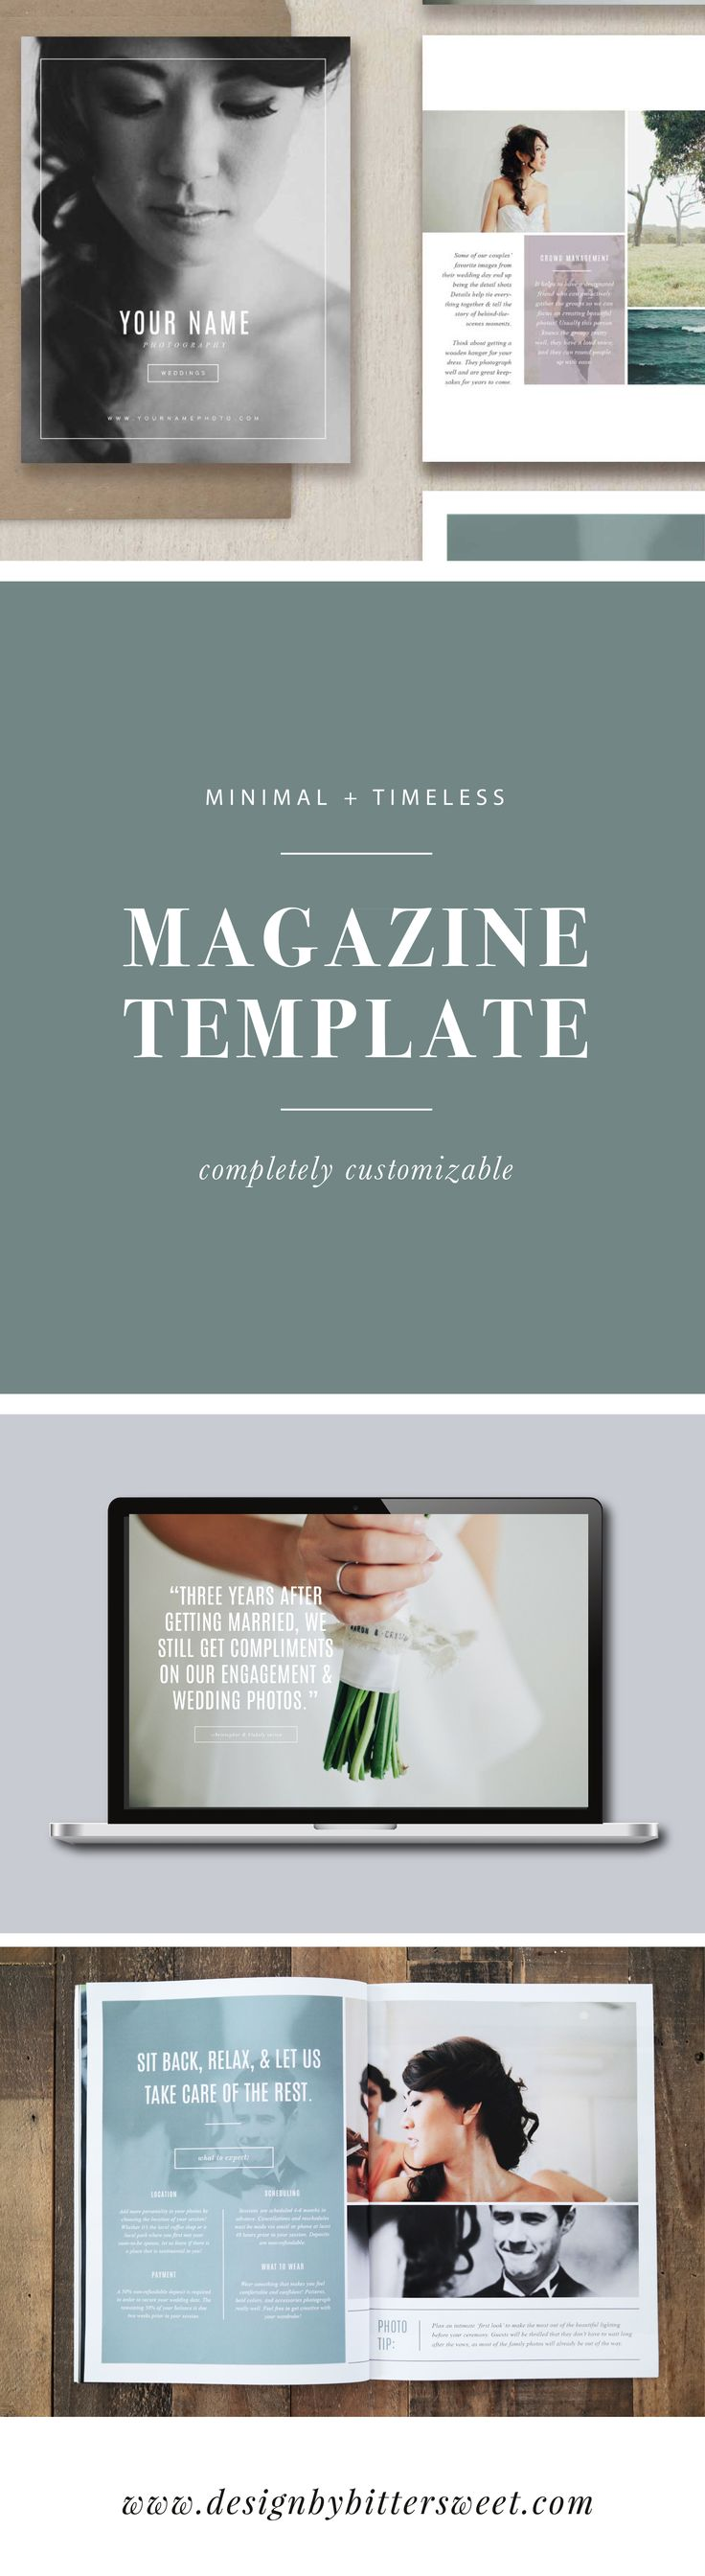 Create a beautiful magazine for your photography studio! With pre-written text & a completely customizable design, you can easily create a beautiful publication to match your current branding. Drag and drop your logo directly onto the Photoshop files for more of a custom look! Images by @sammblake